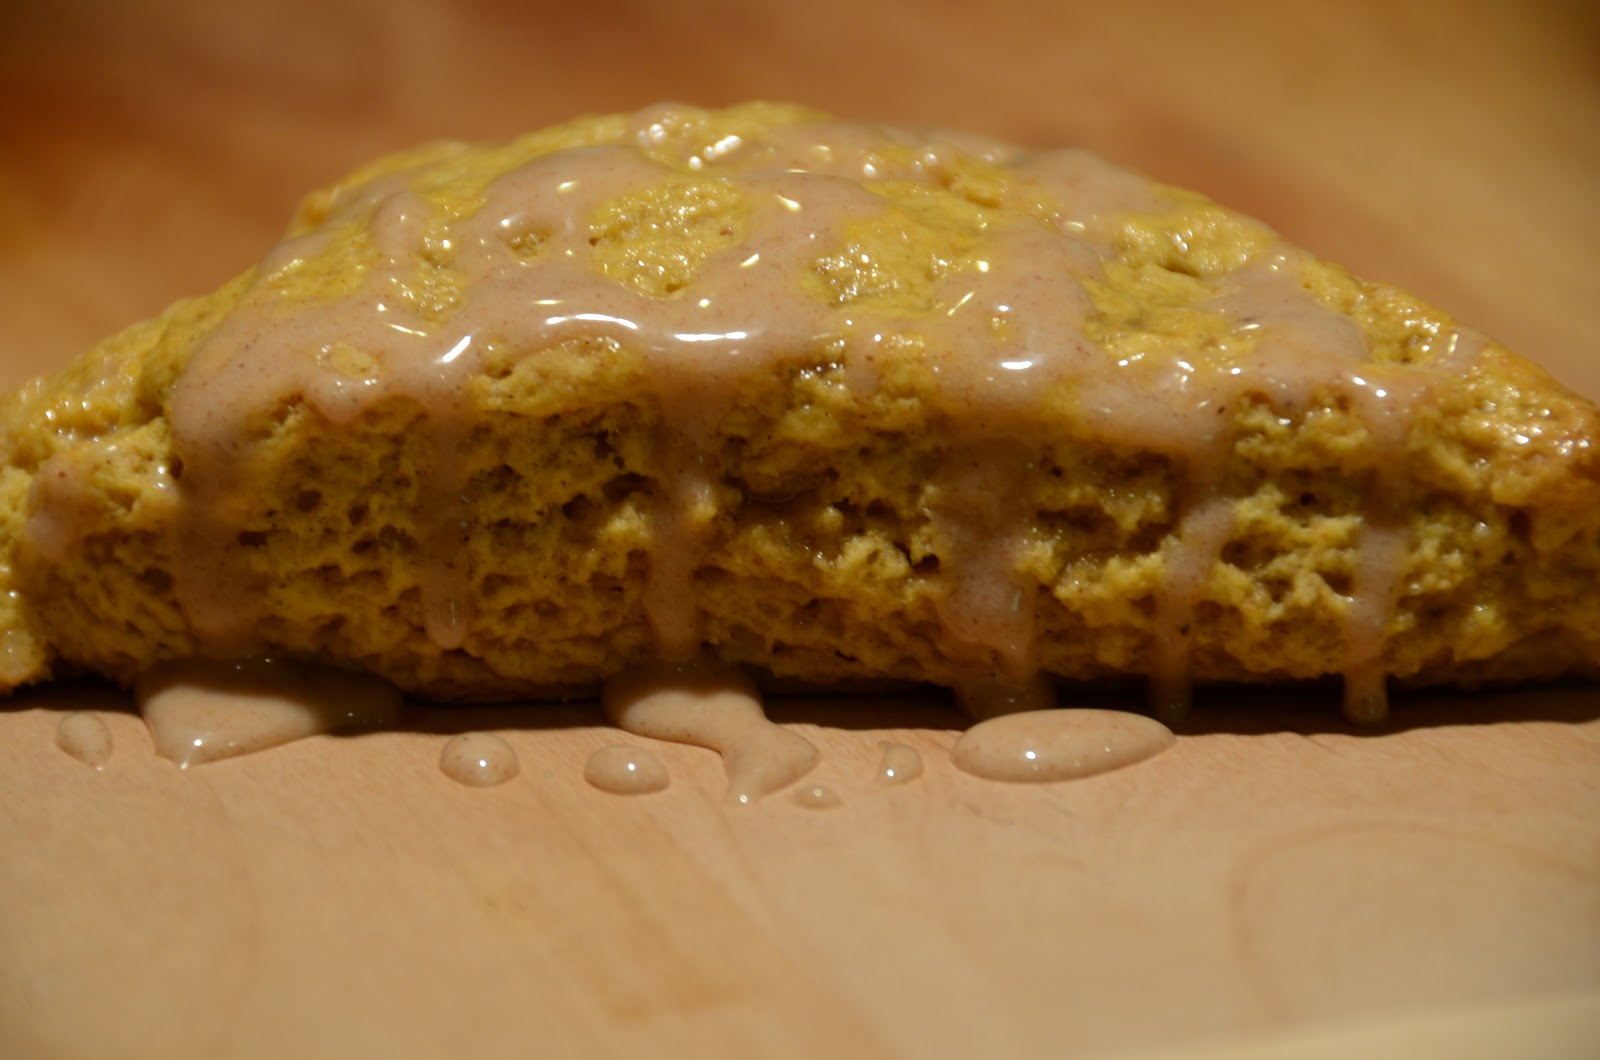 Loving Life: Recipe: Starbucks Pumpkin Scones